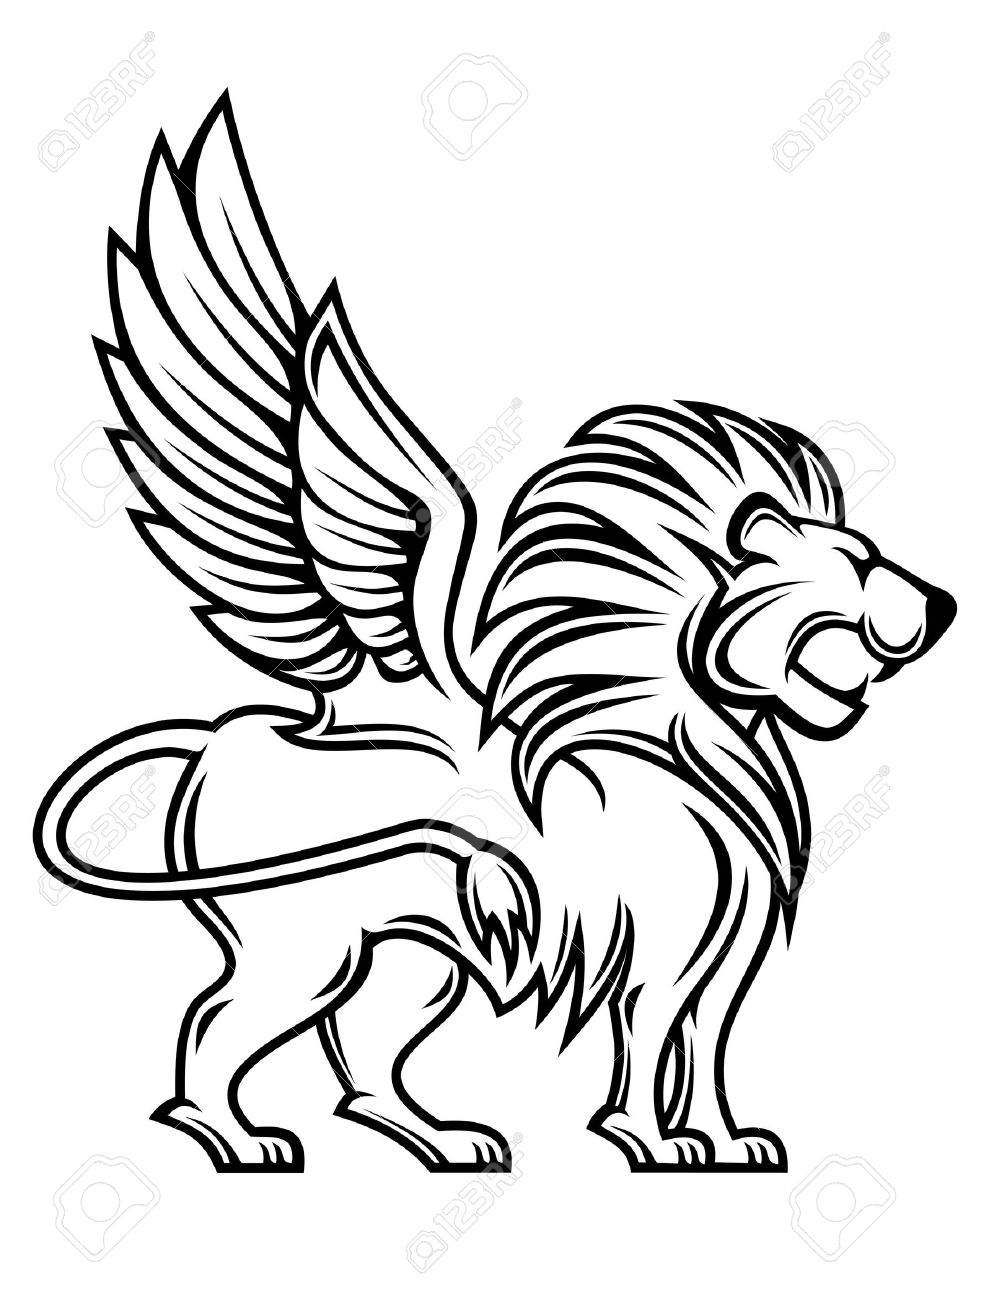 Set with africa animals black white stock vector 169 insima - Profile Wings Isolated Lion With Wings For Heraldry Design